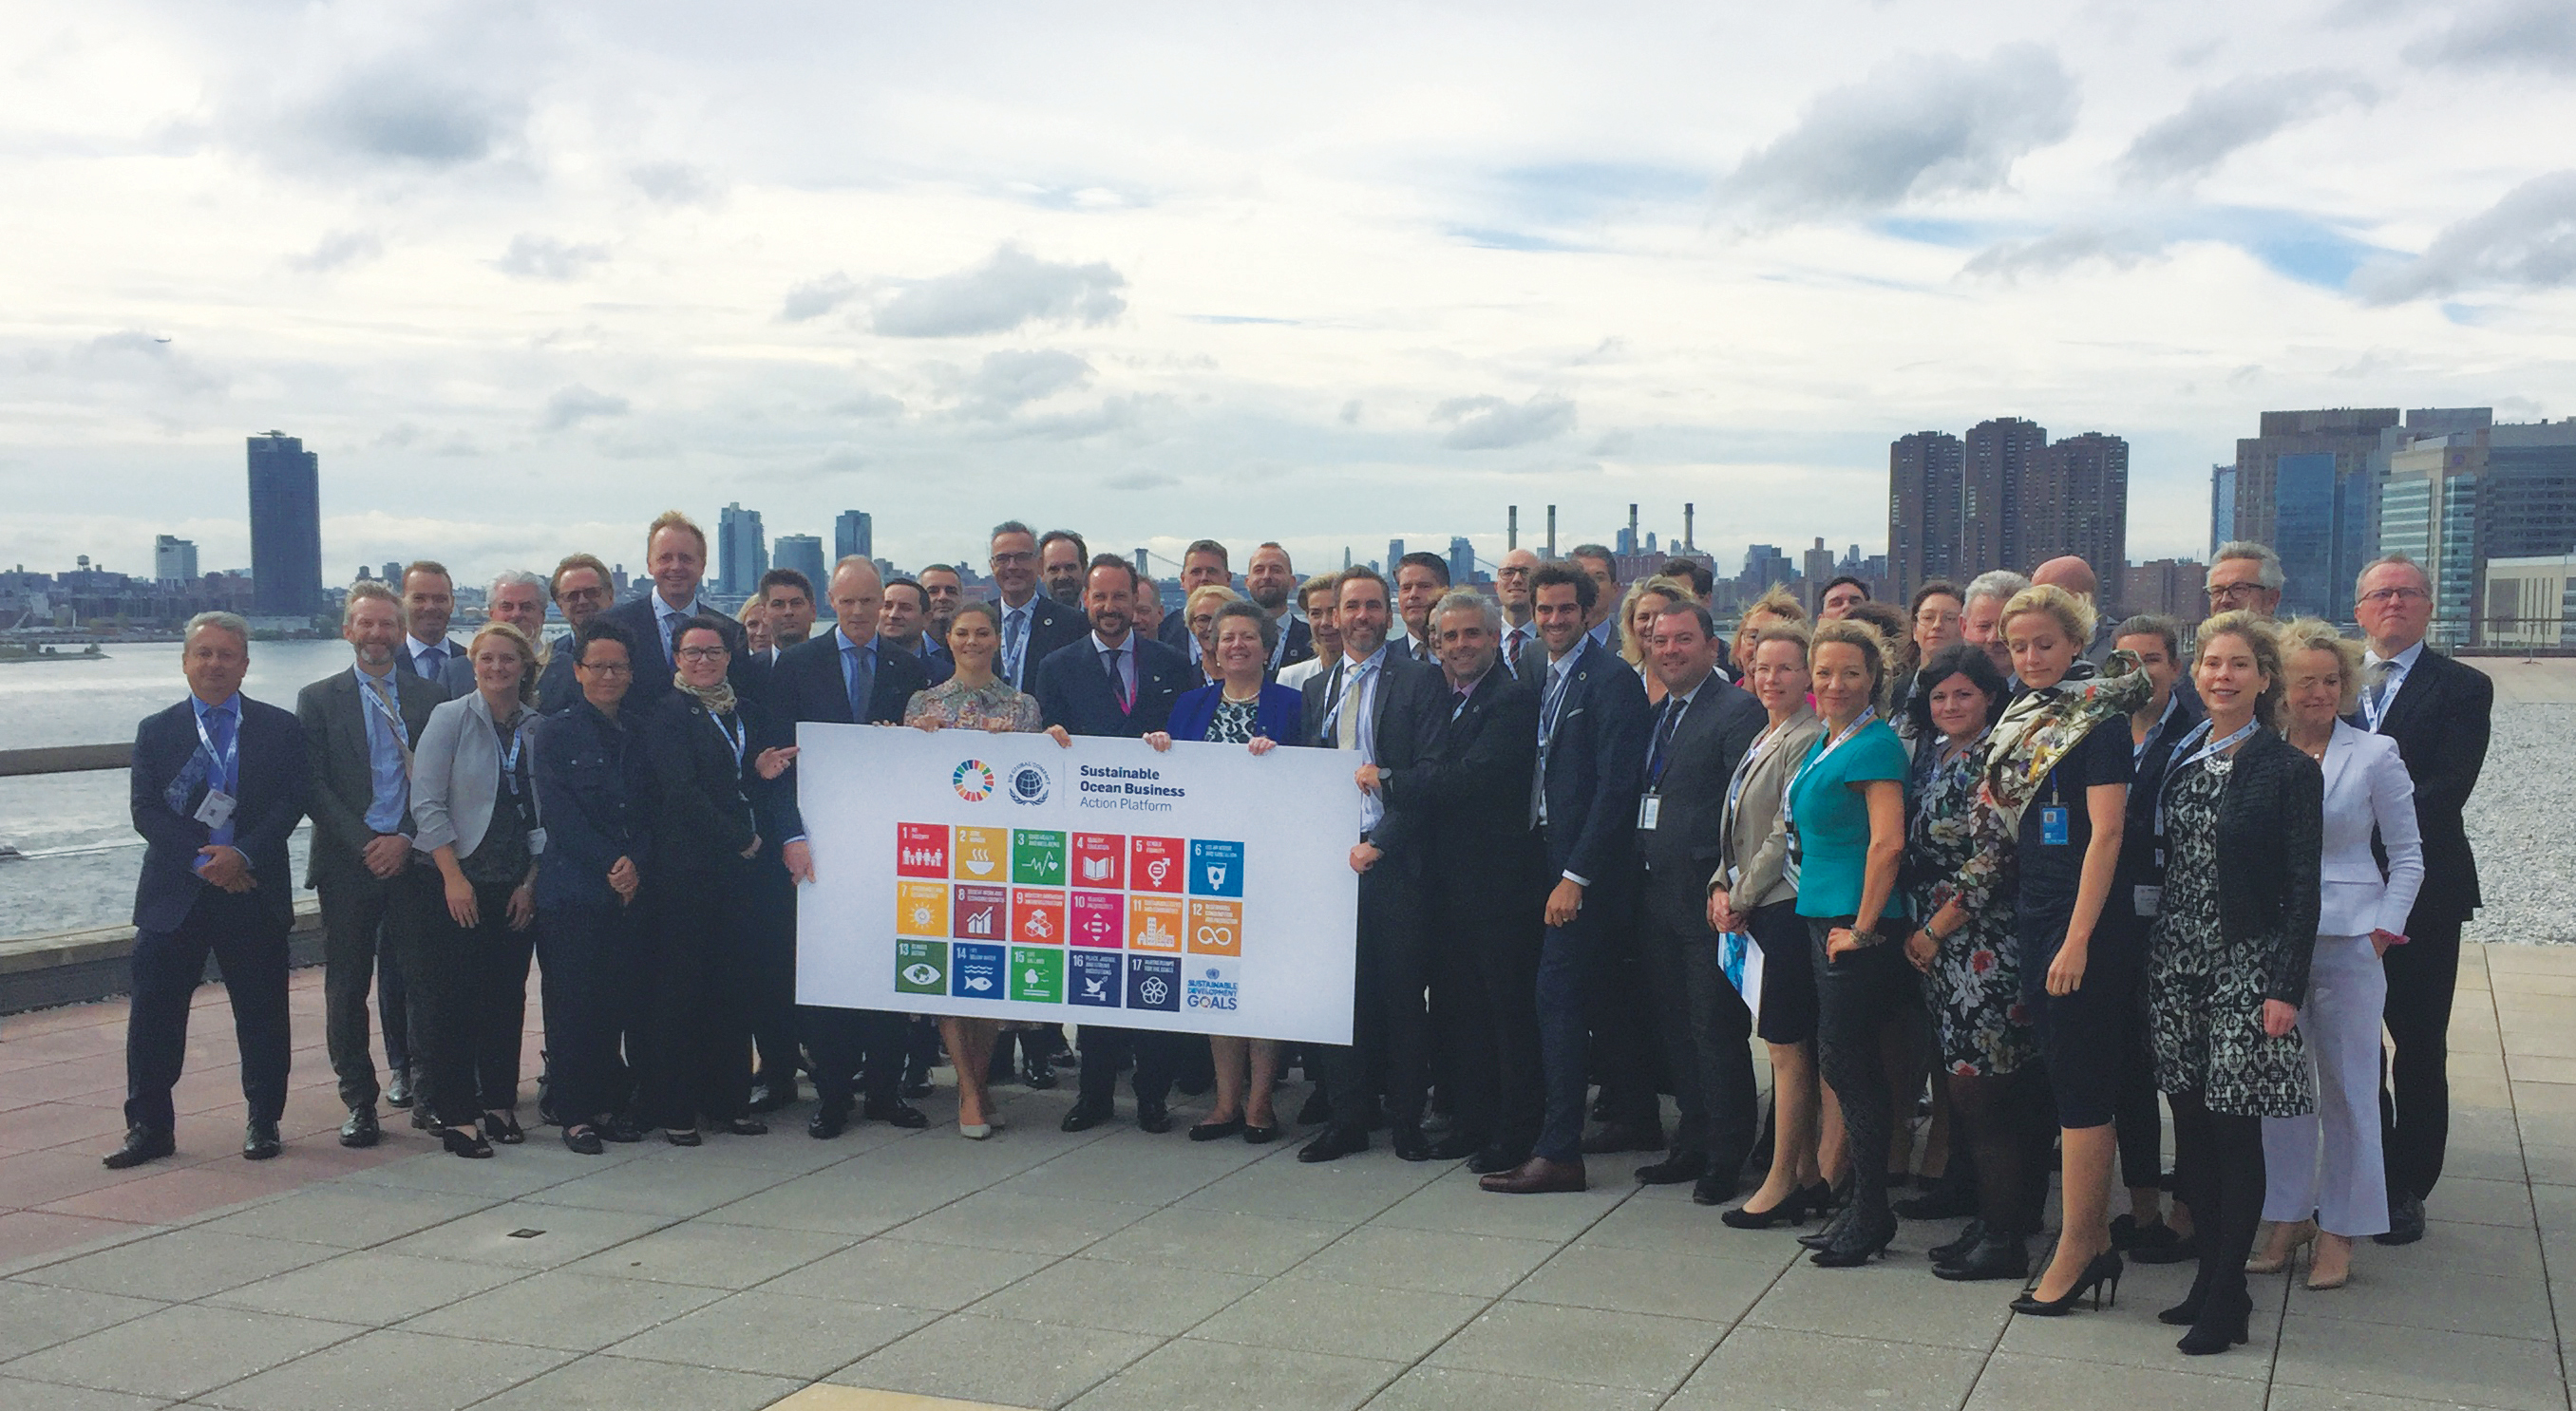 Group photo Sustainable Ocean Business Action Platform 24 September UNHQ2